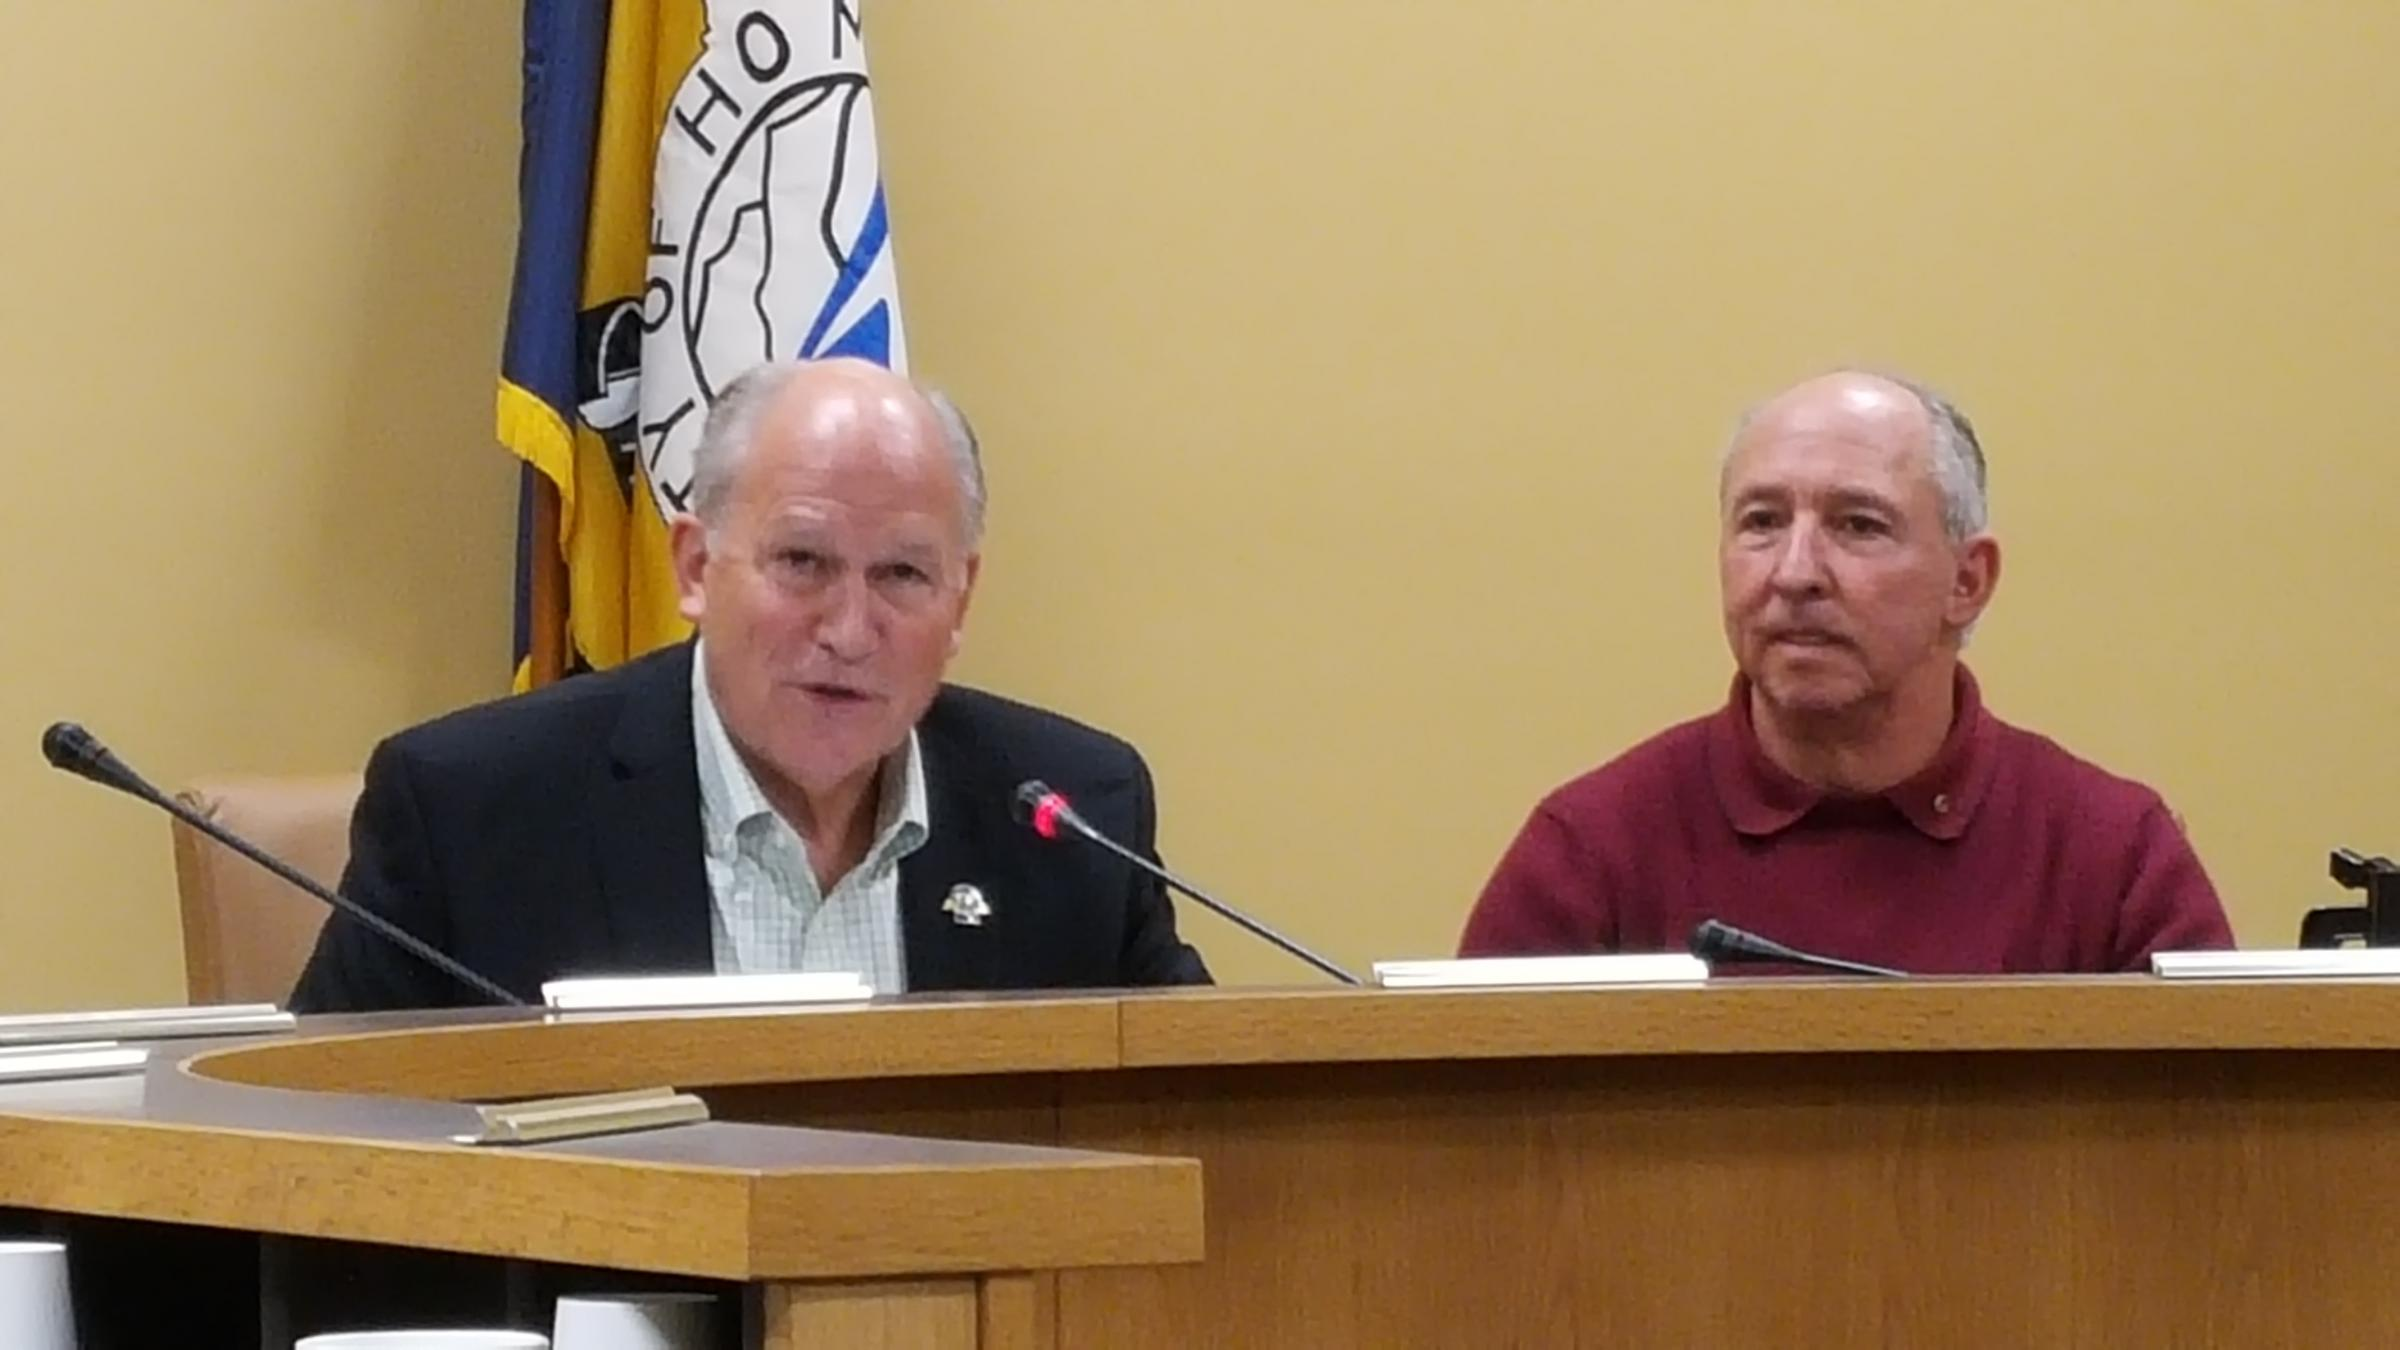 Governor Walker Addresses Homer City Council alongside Council Member Bryan Zak on Tuesday, August 2. (Shahla Farzan, KBBI)